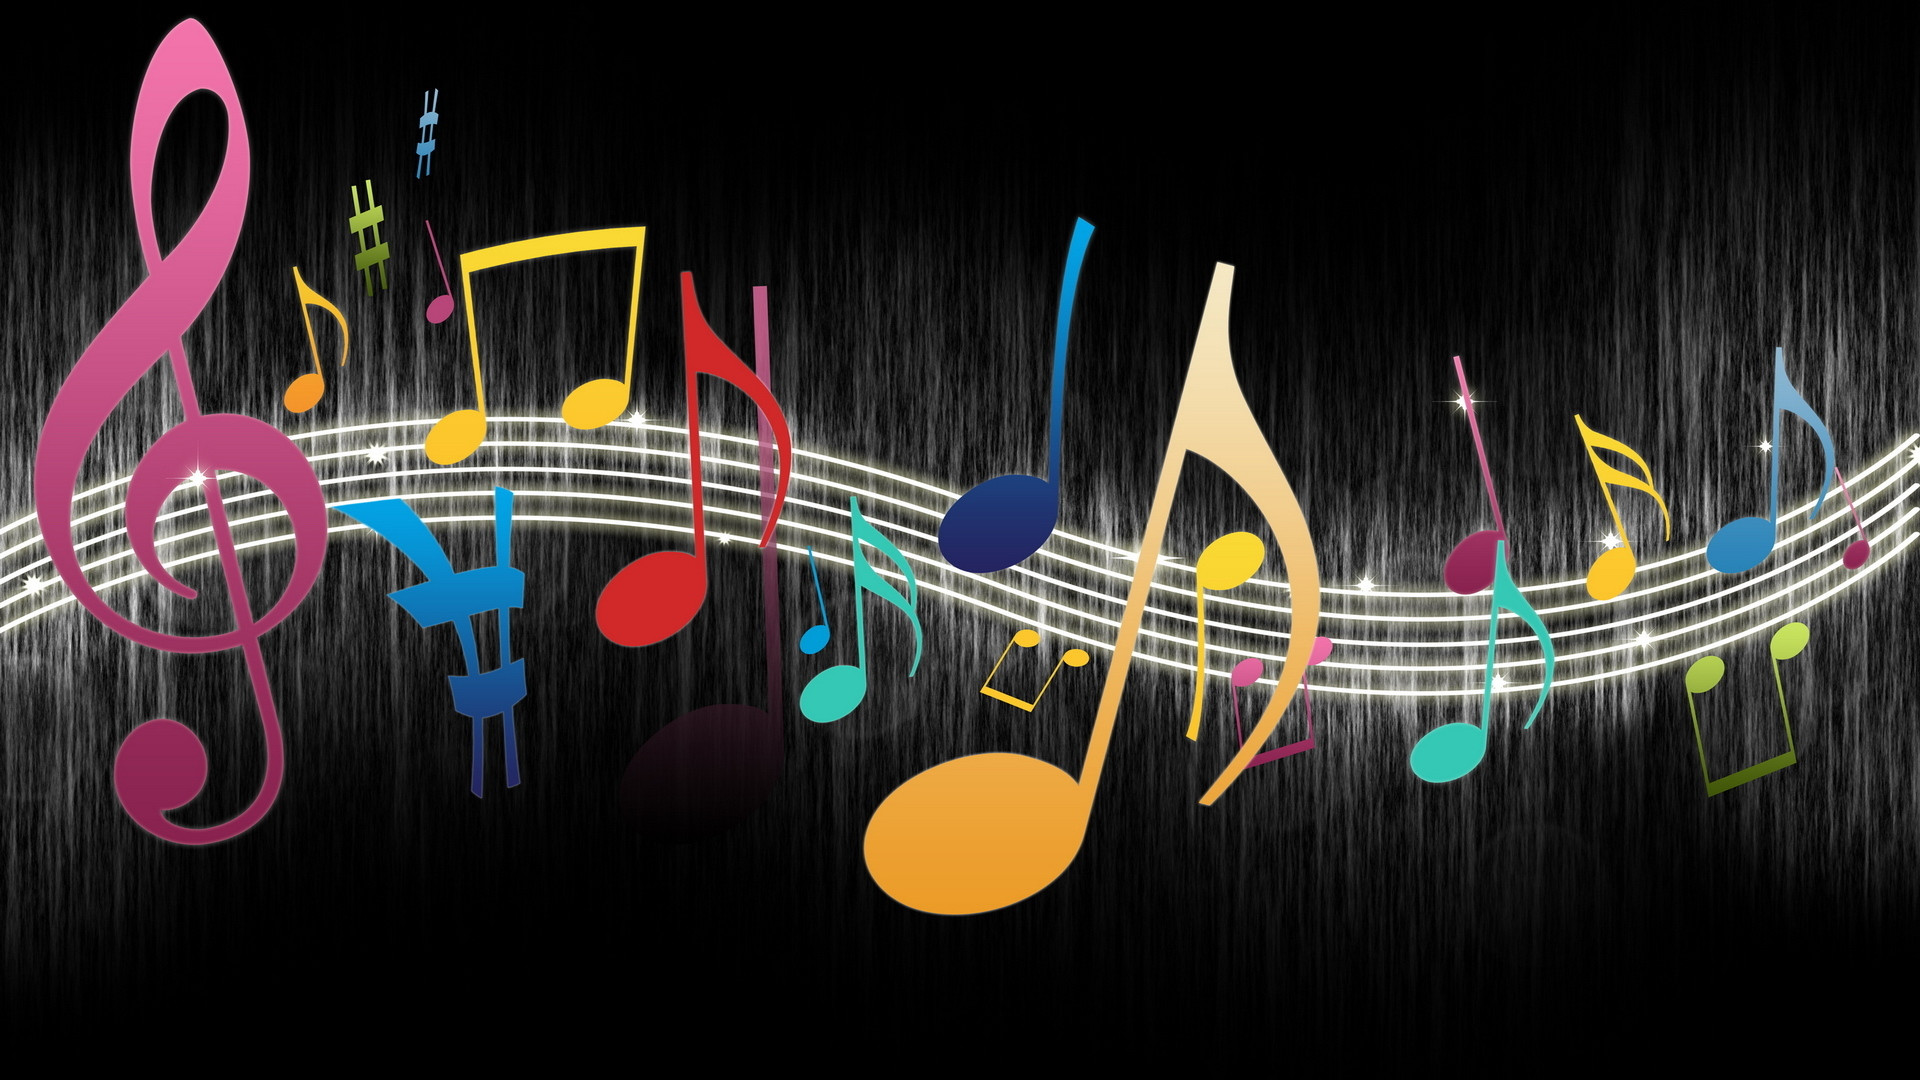 Music Graffiti Wallpapers: Cool Music Backgrounds (57+ Images